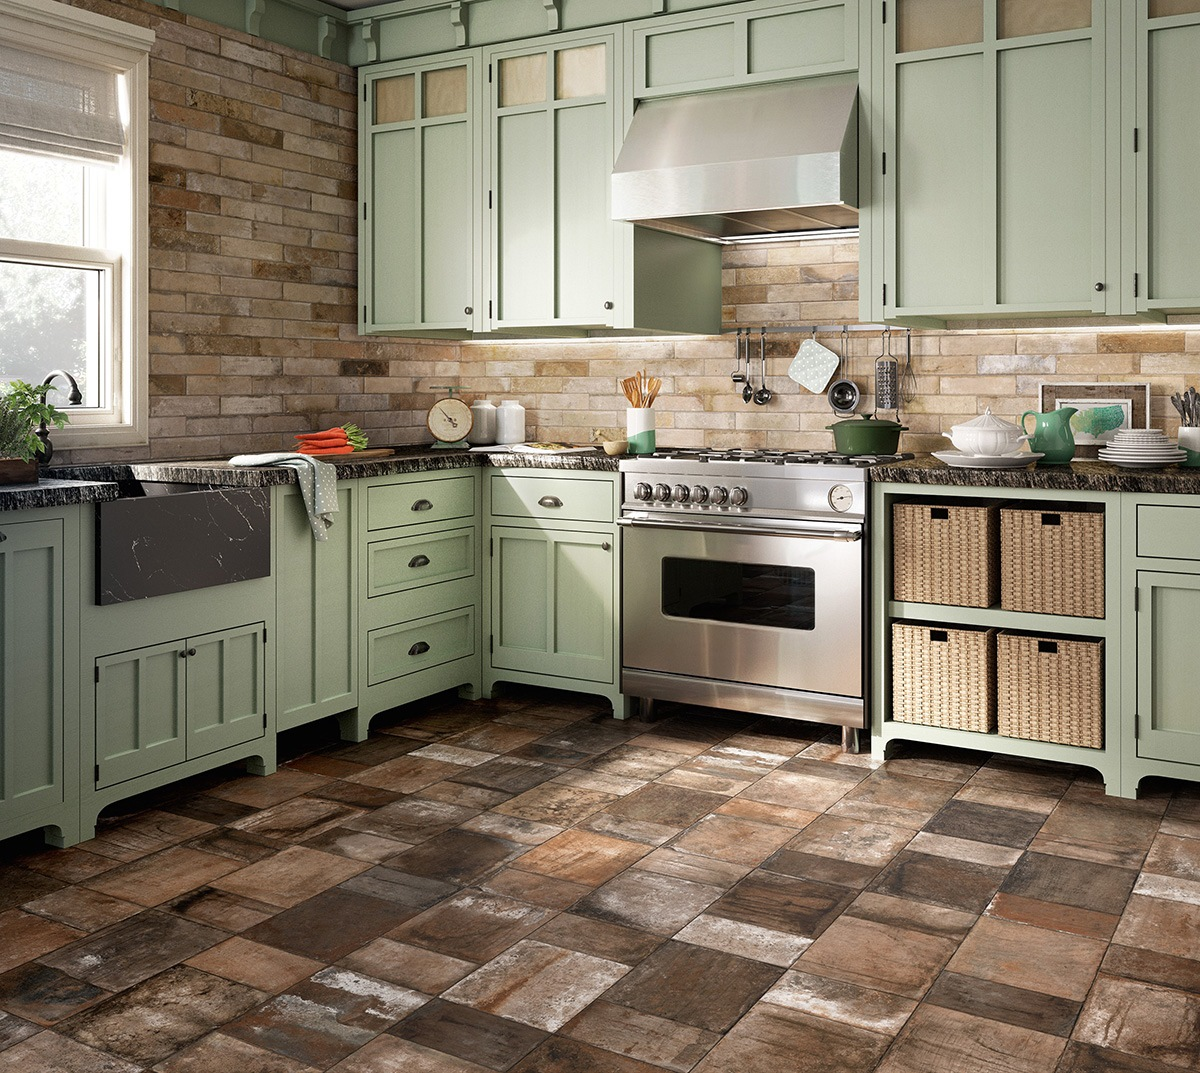 Porcelain stoneware floors in kitchen country style for Country cottage floor tiles